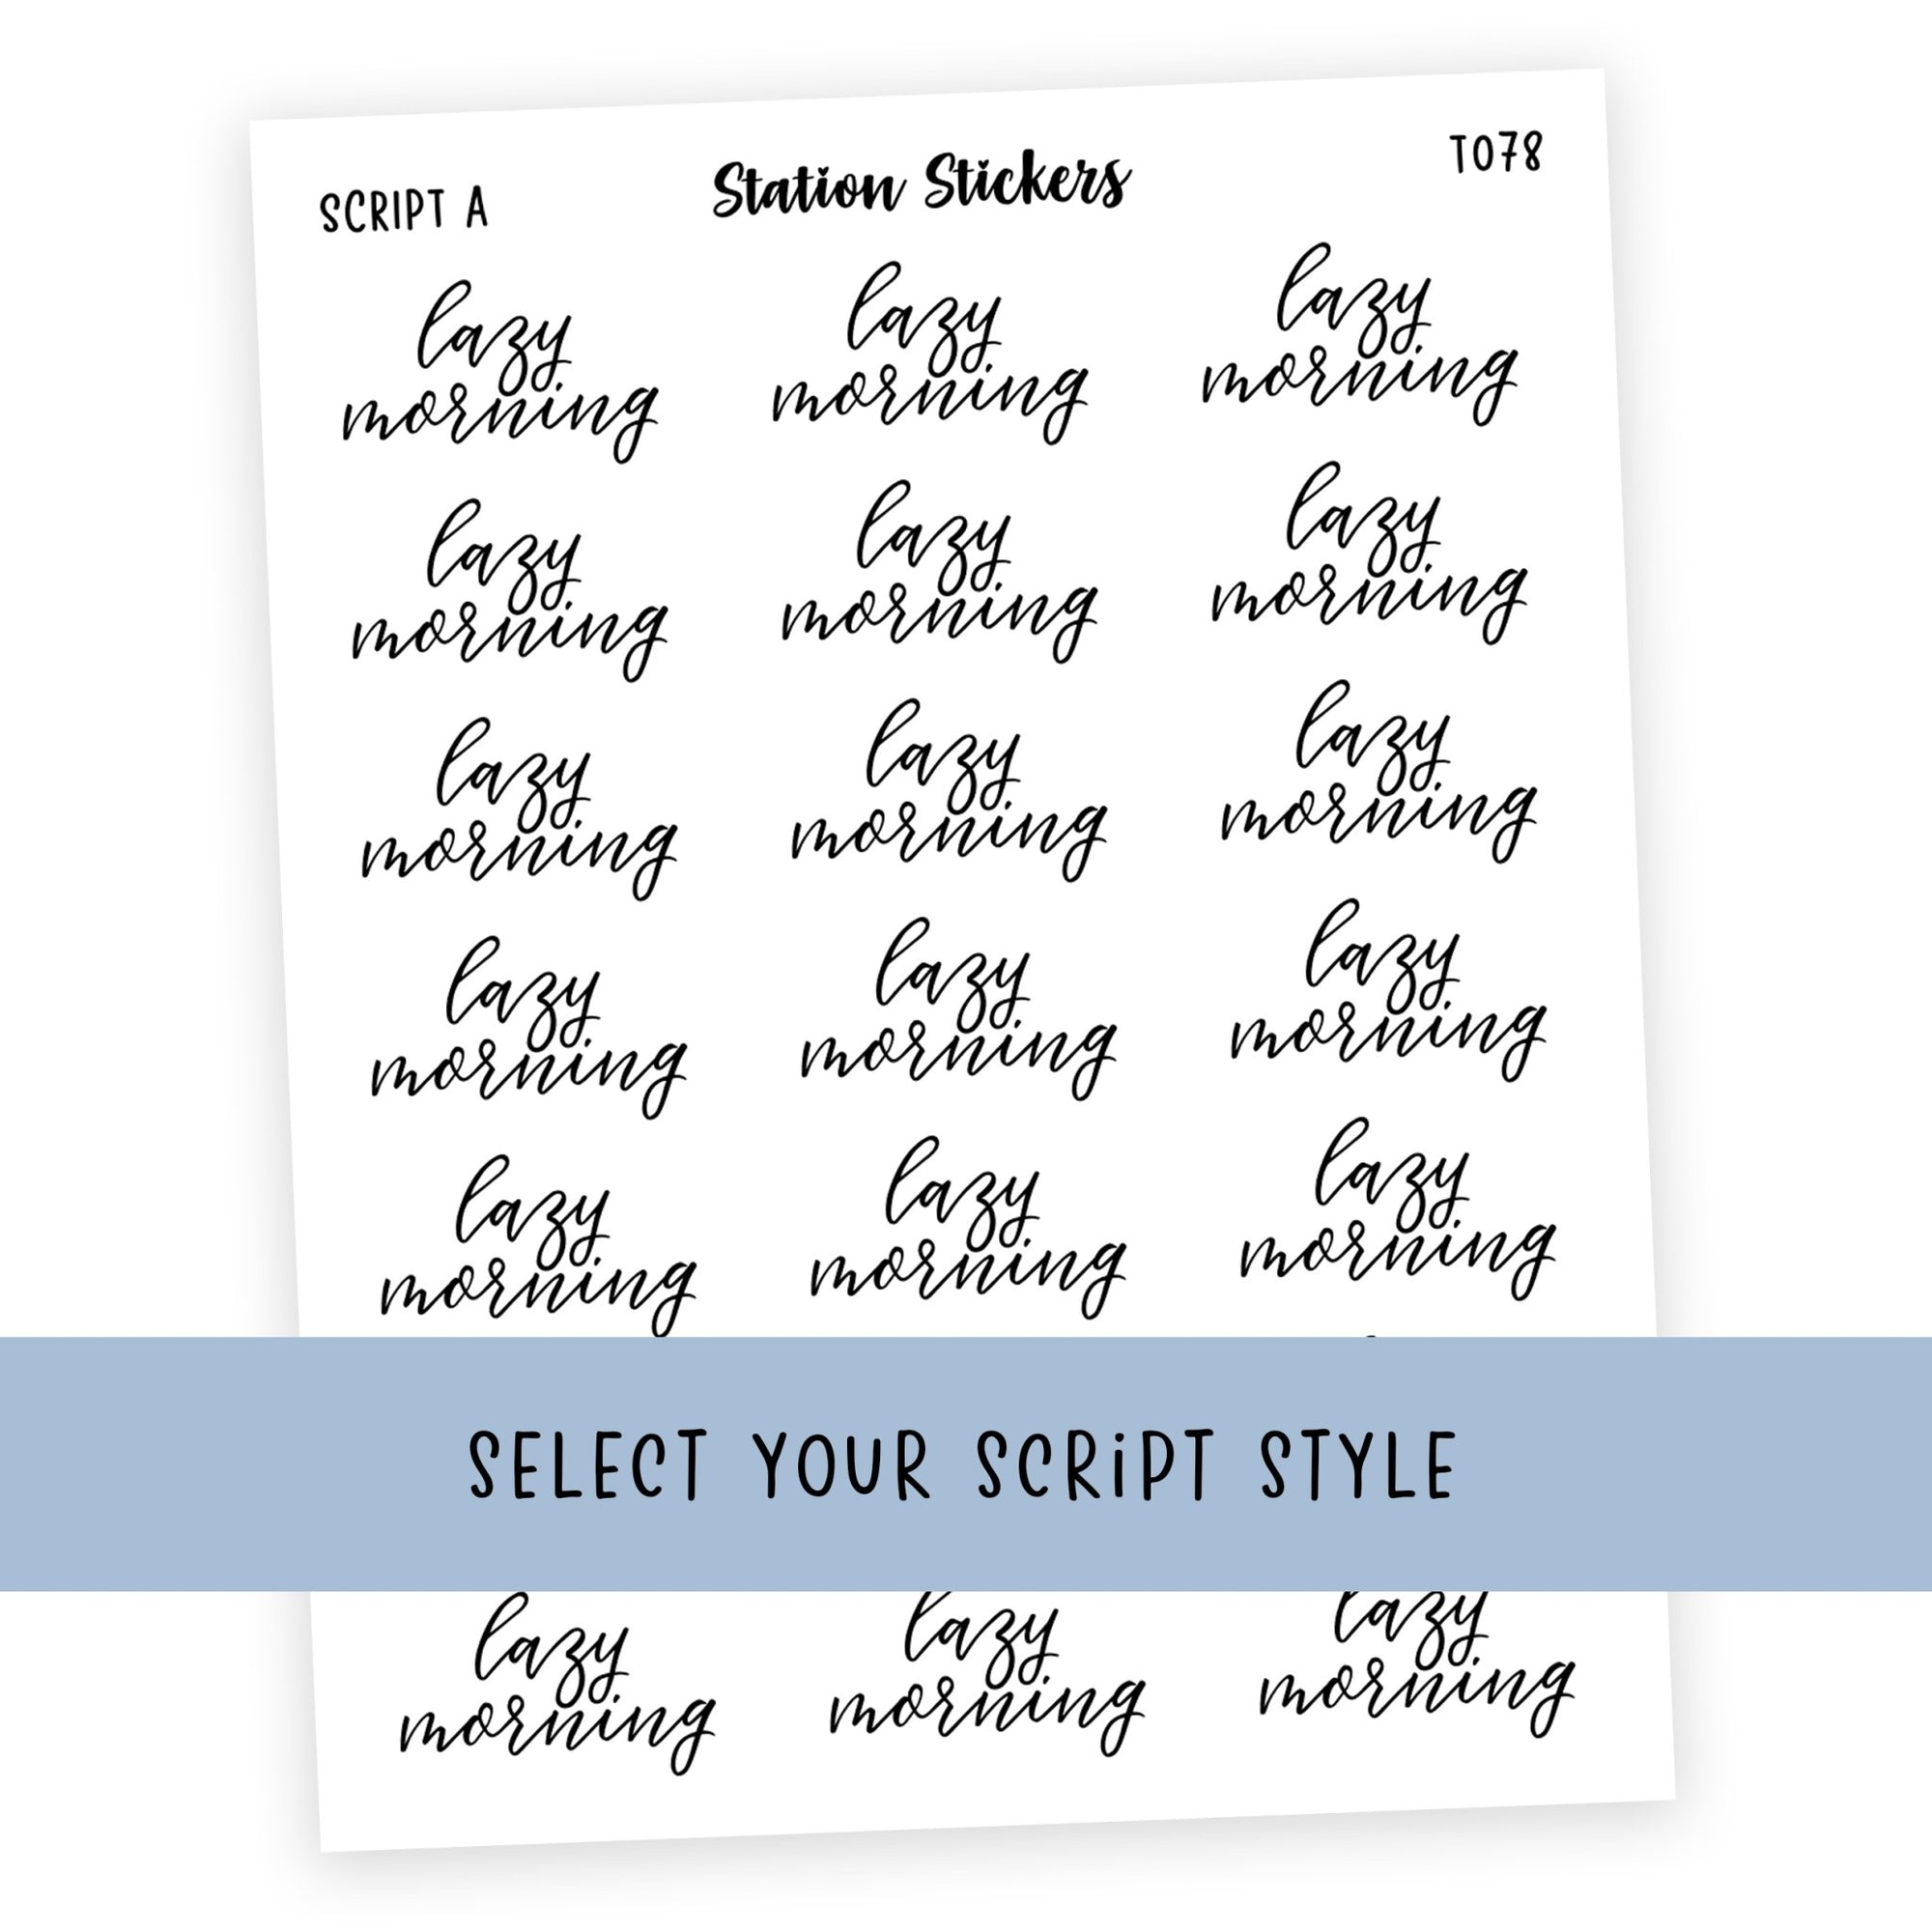 LAZY MORNING • SCRIPTS - Station Stickers